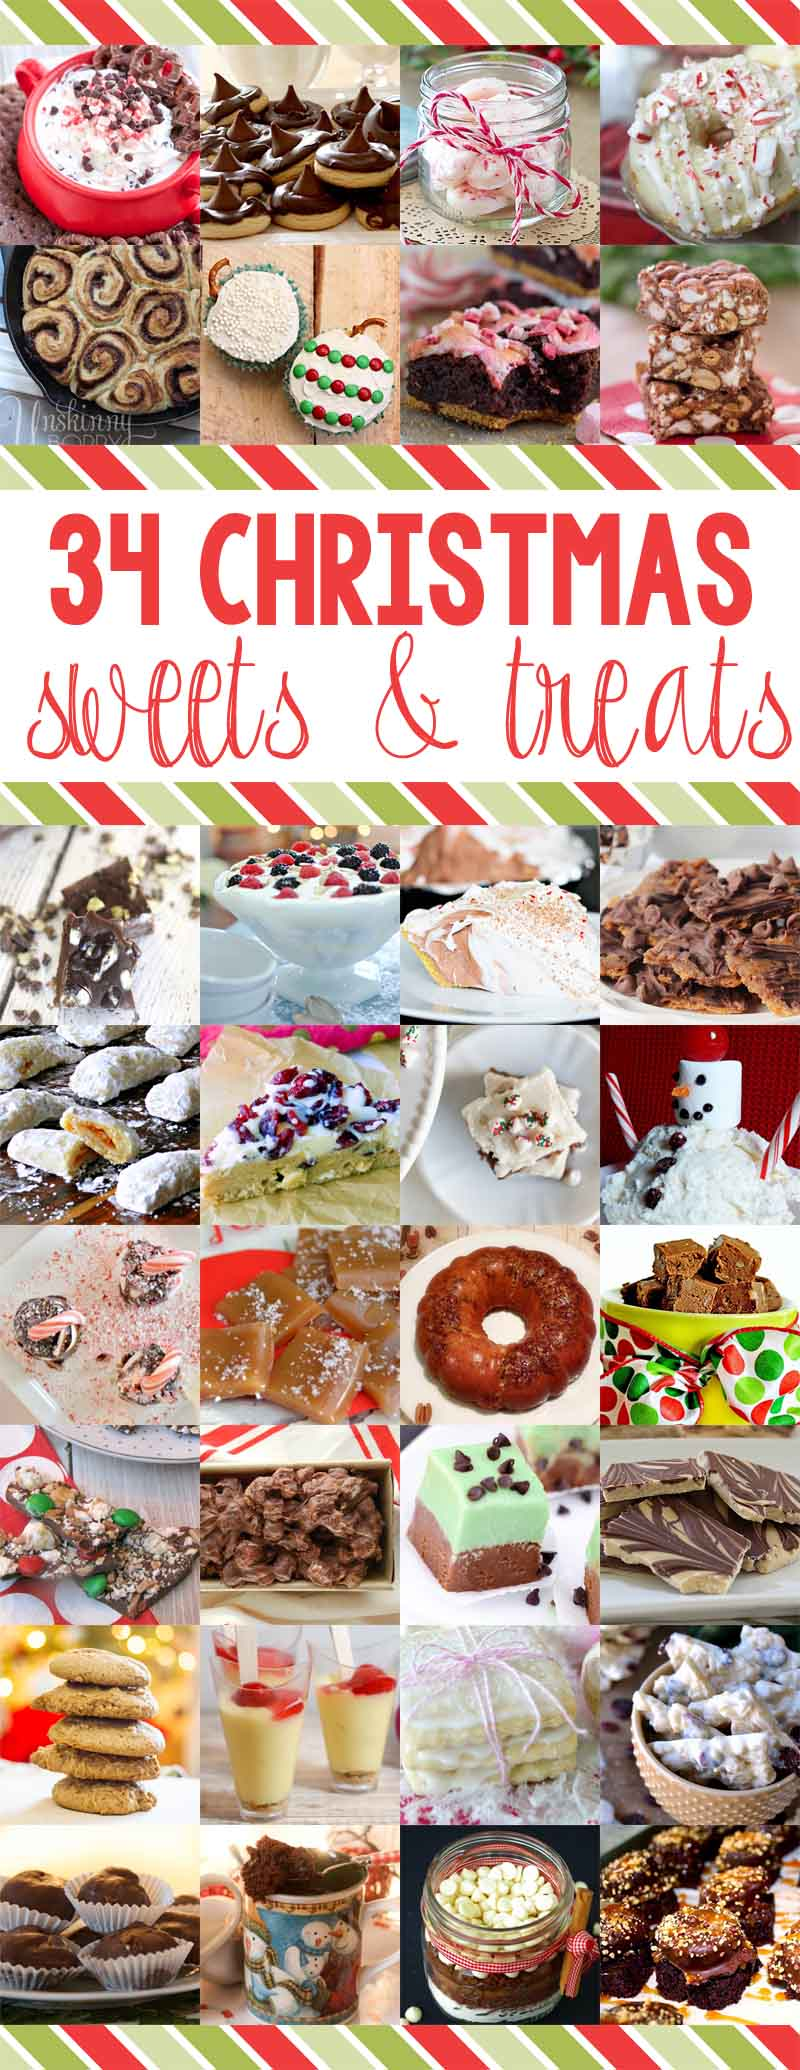 34 Christmas Treats & Sweets